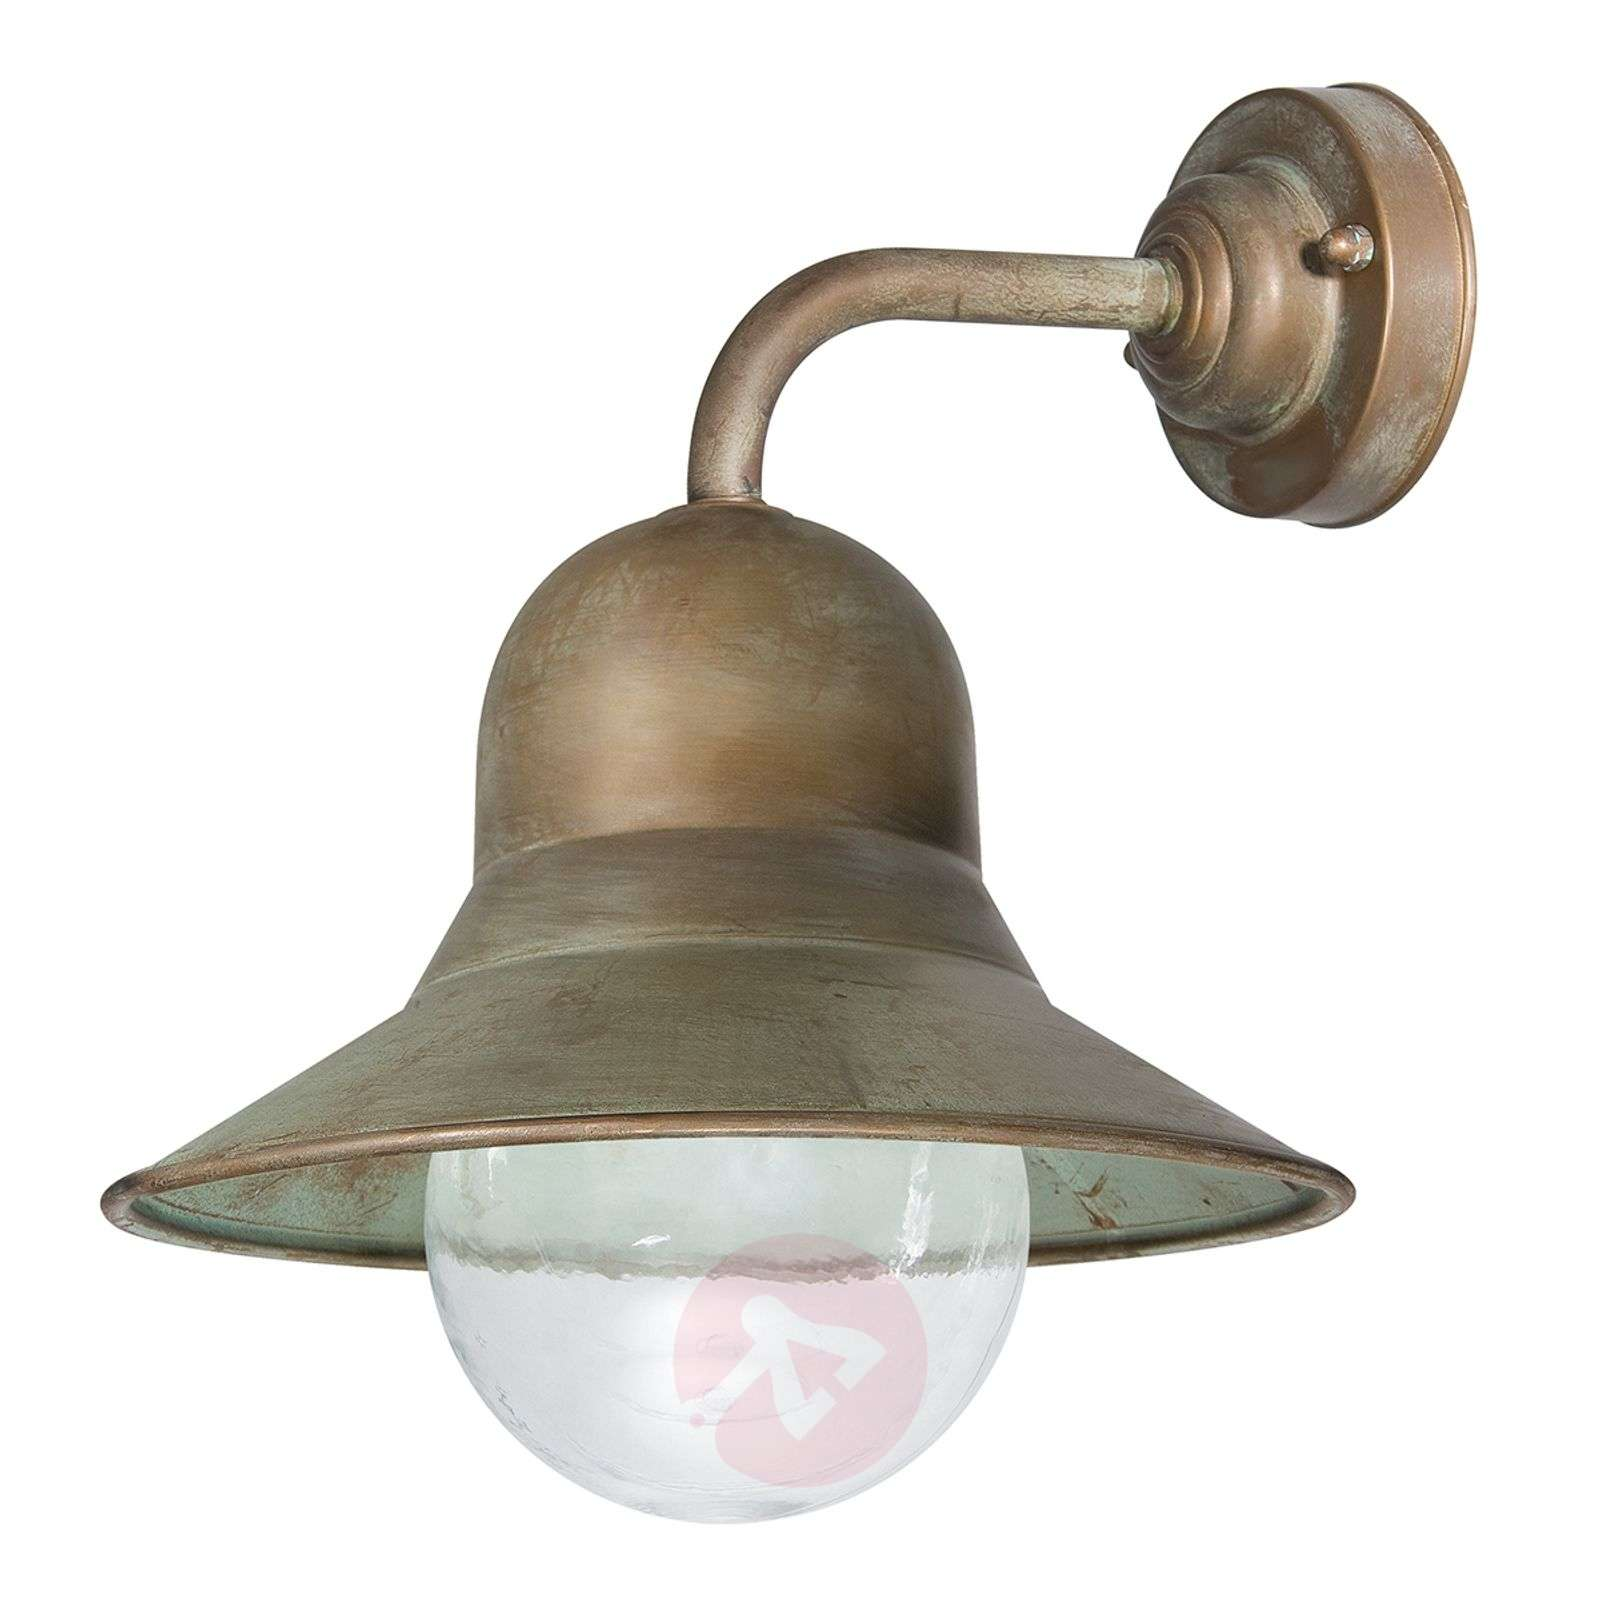 Seawater-resistant outdoor wall lamp Marta-6515370-01